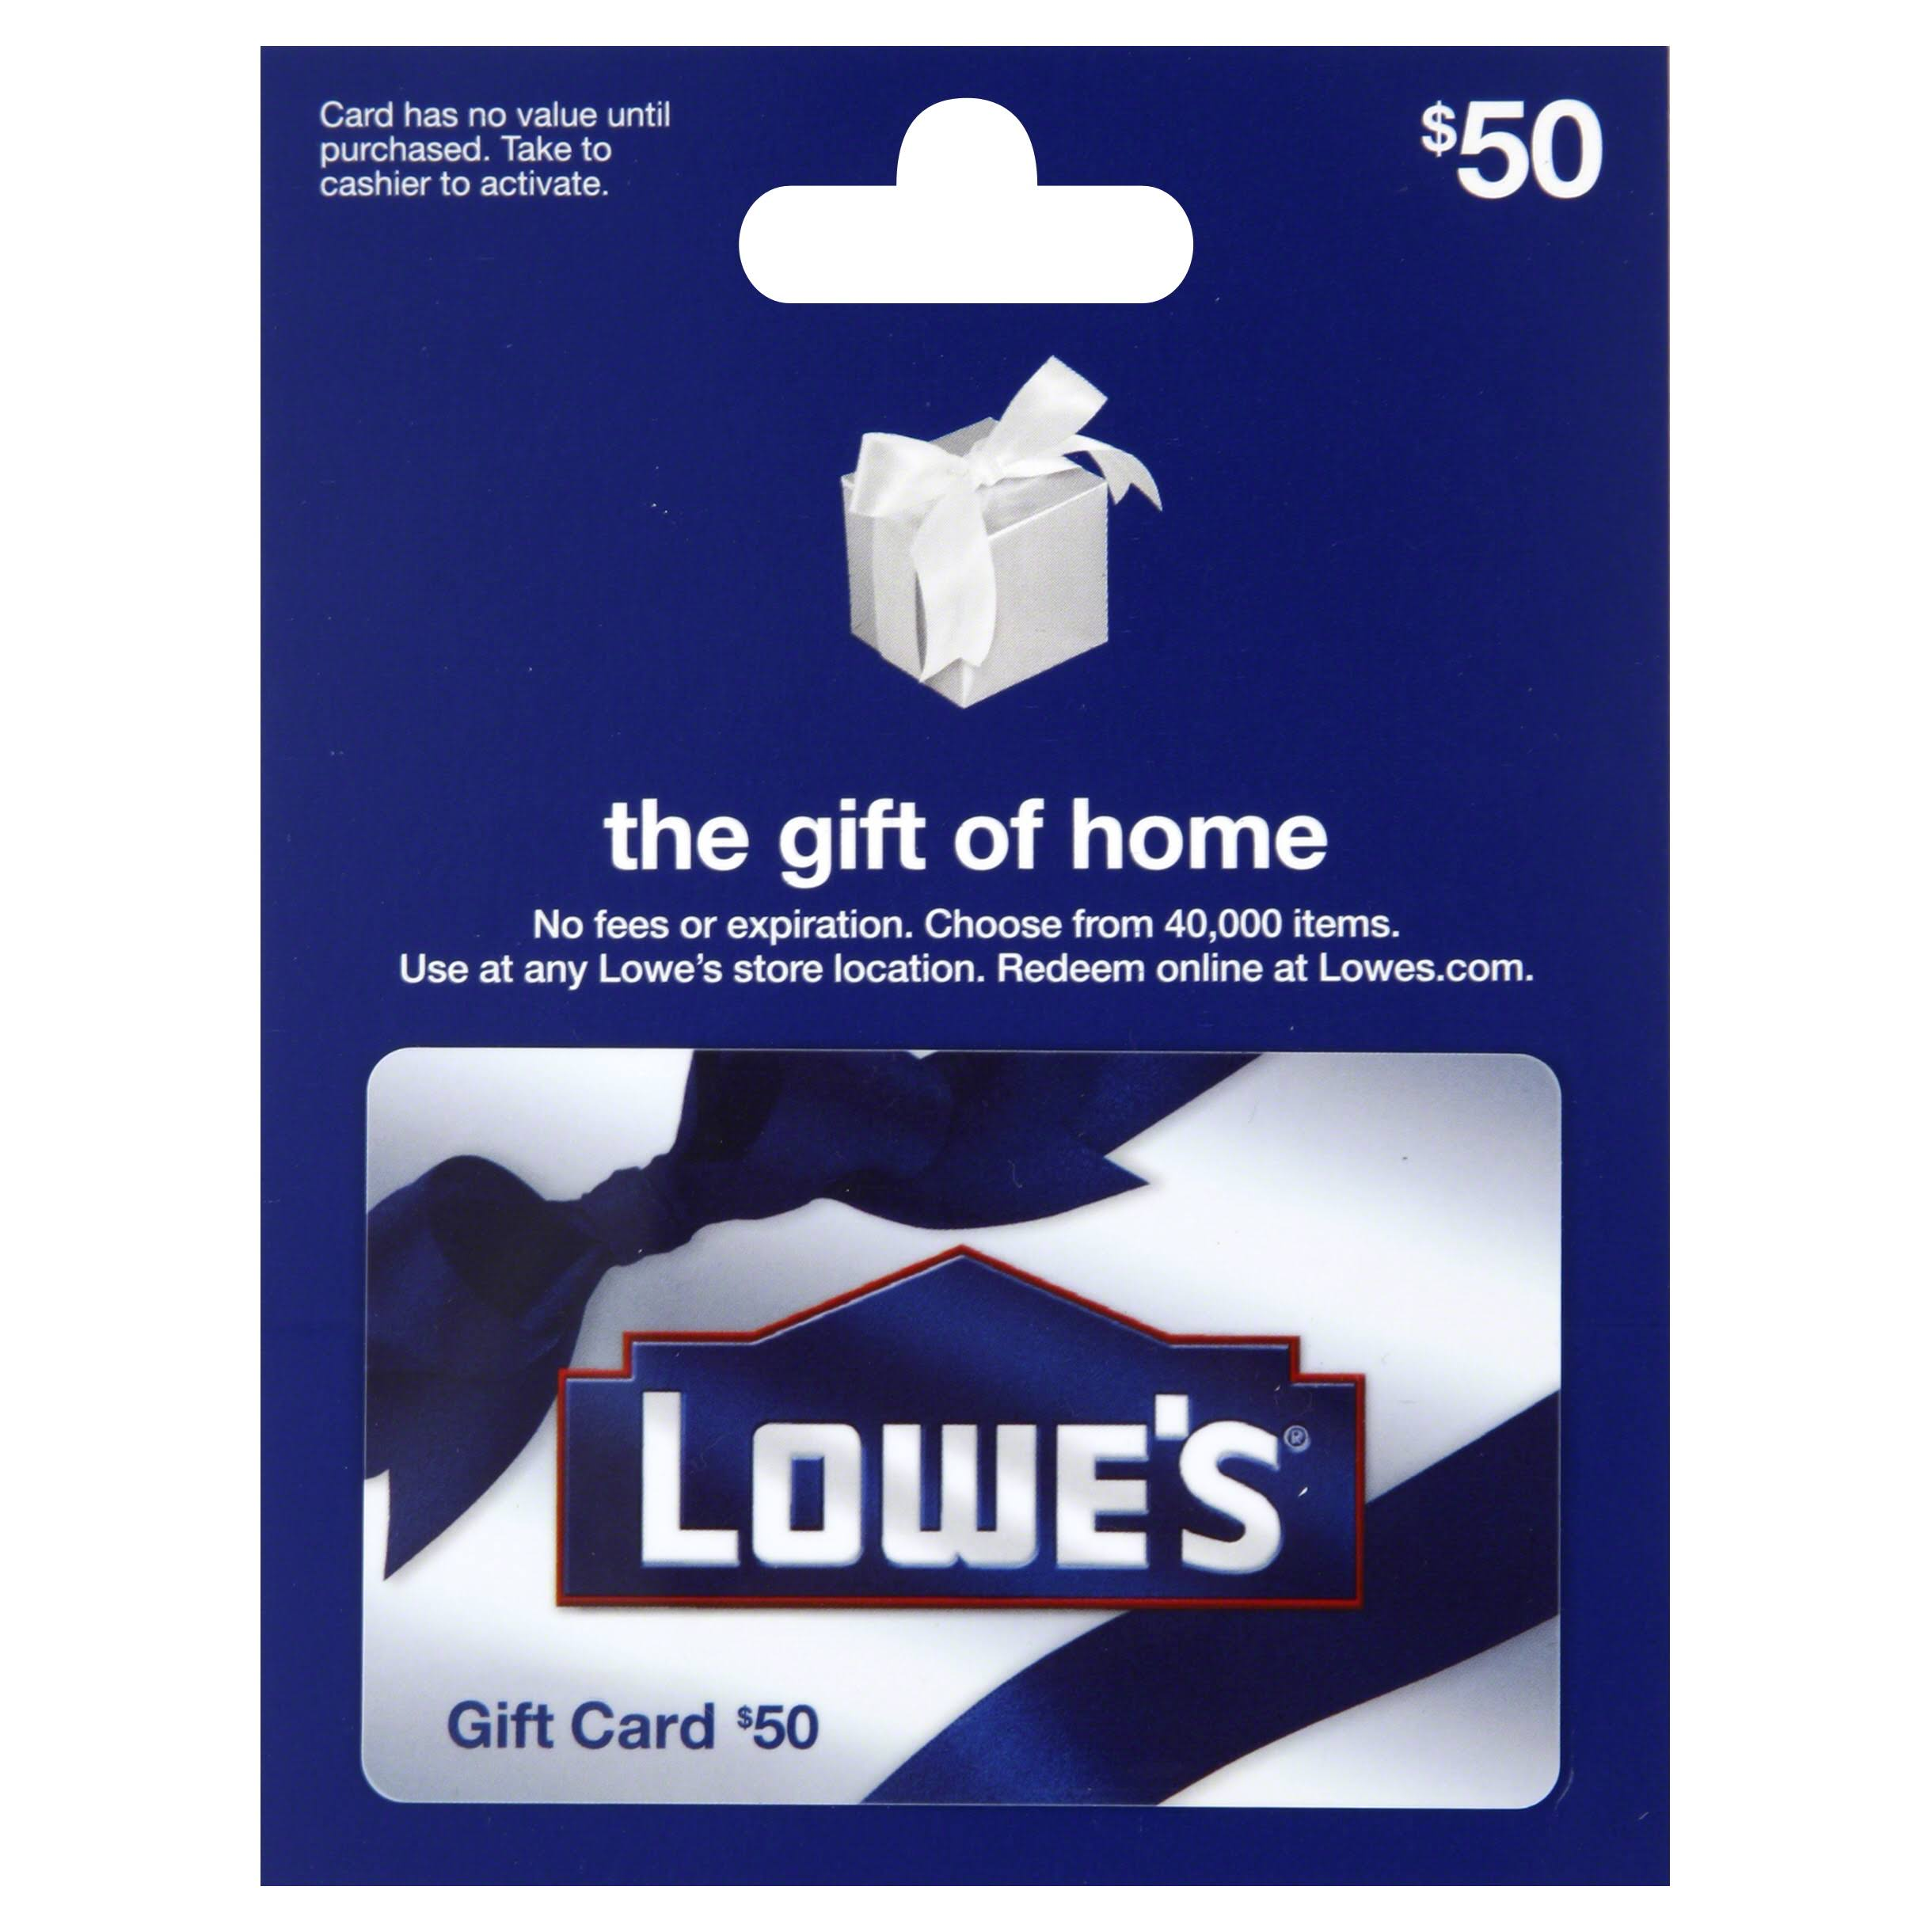 Lowes Gift Card,